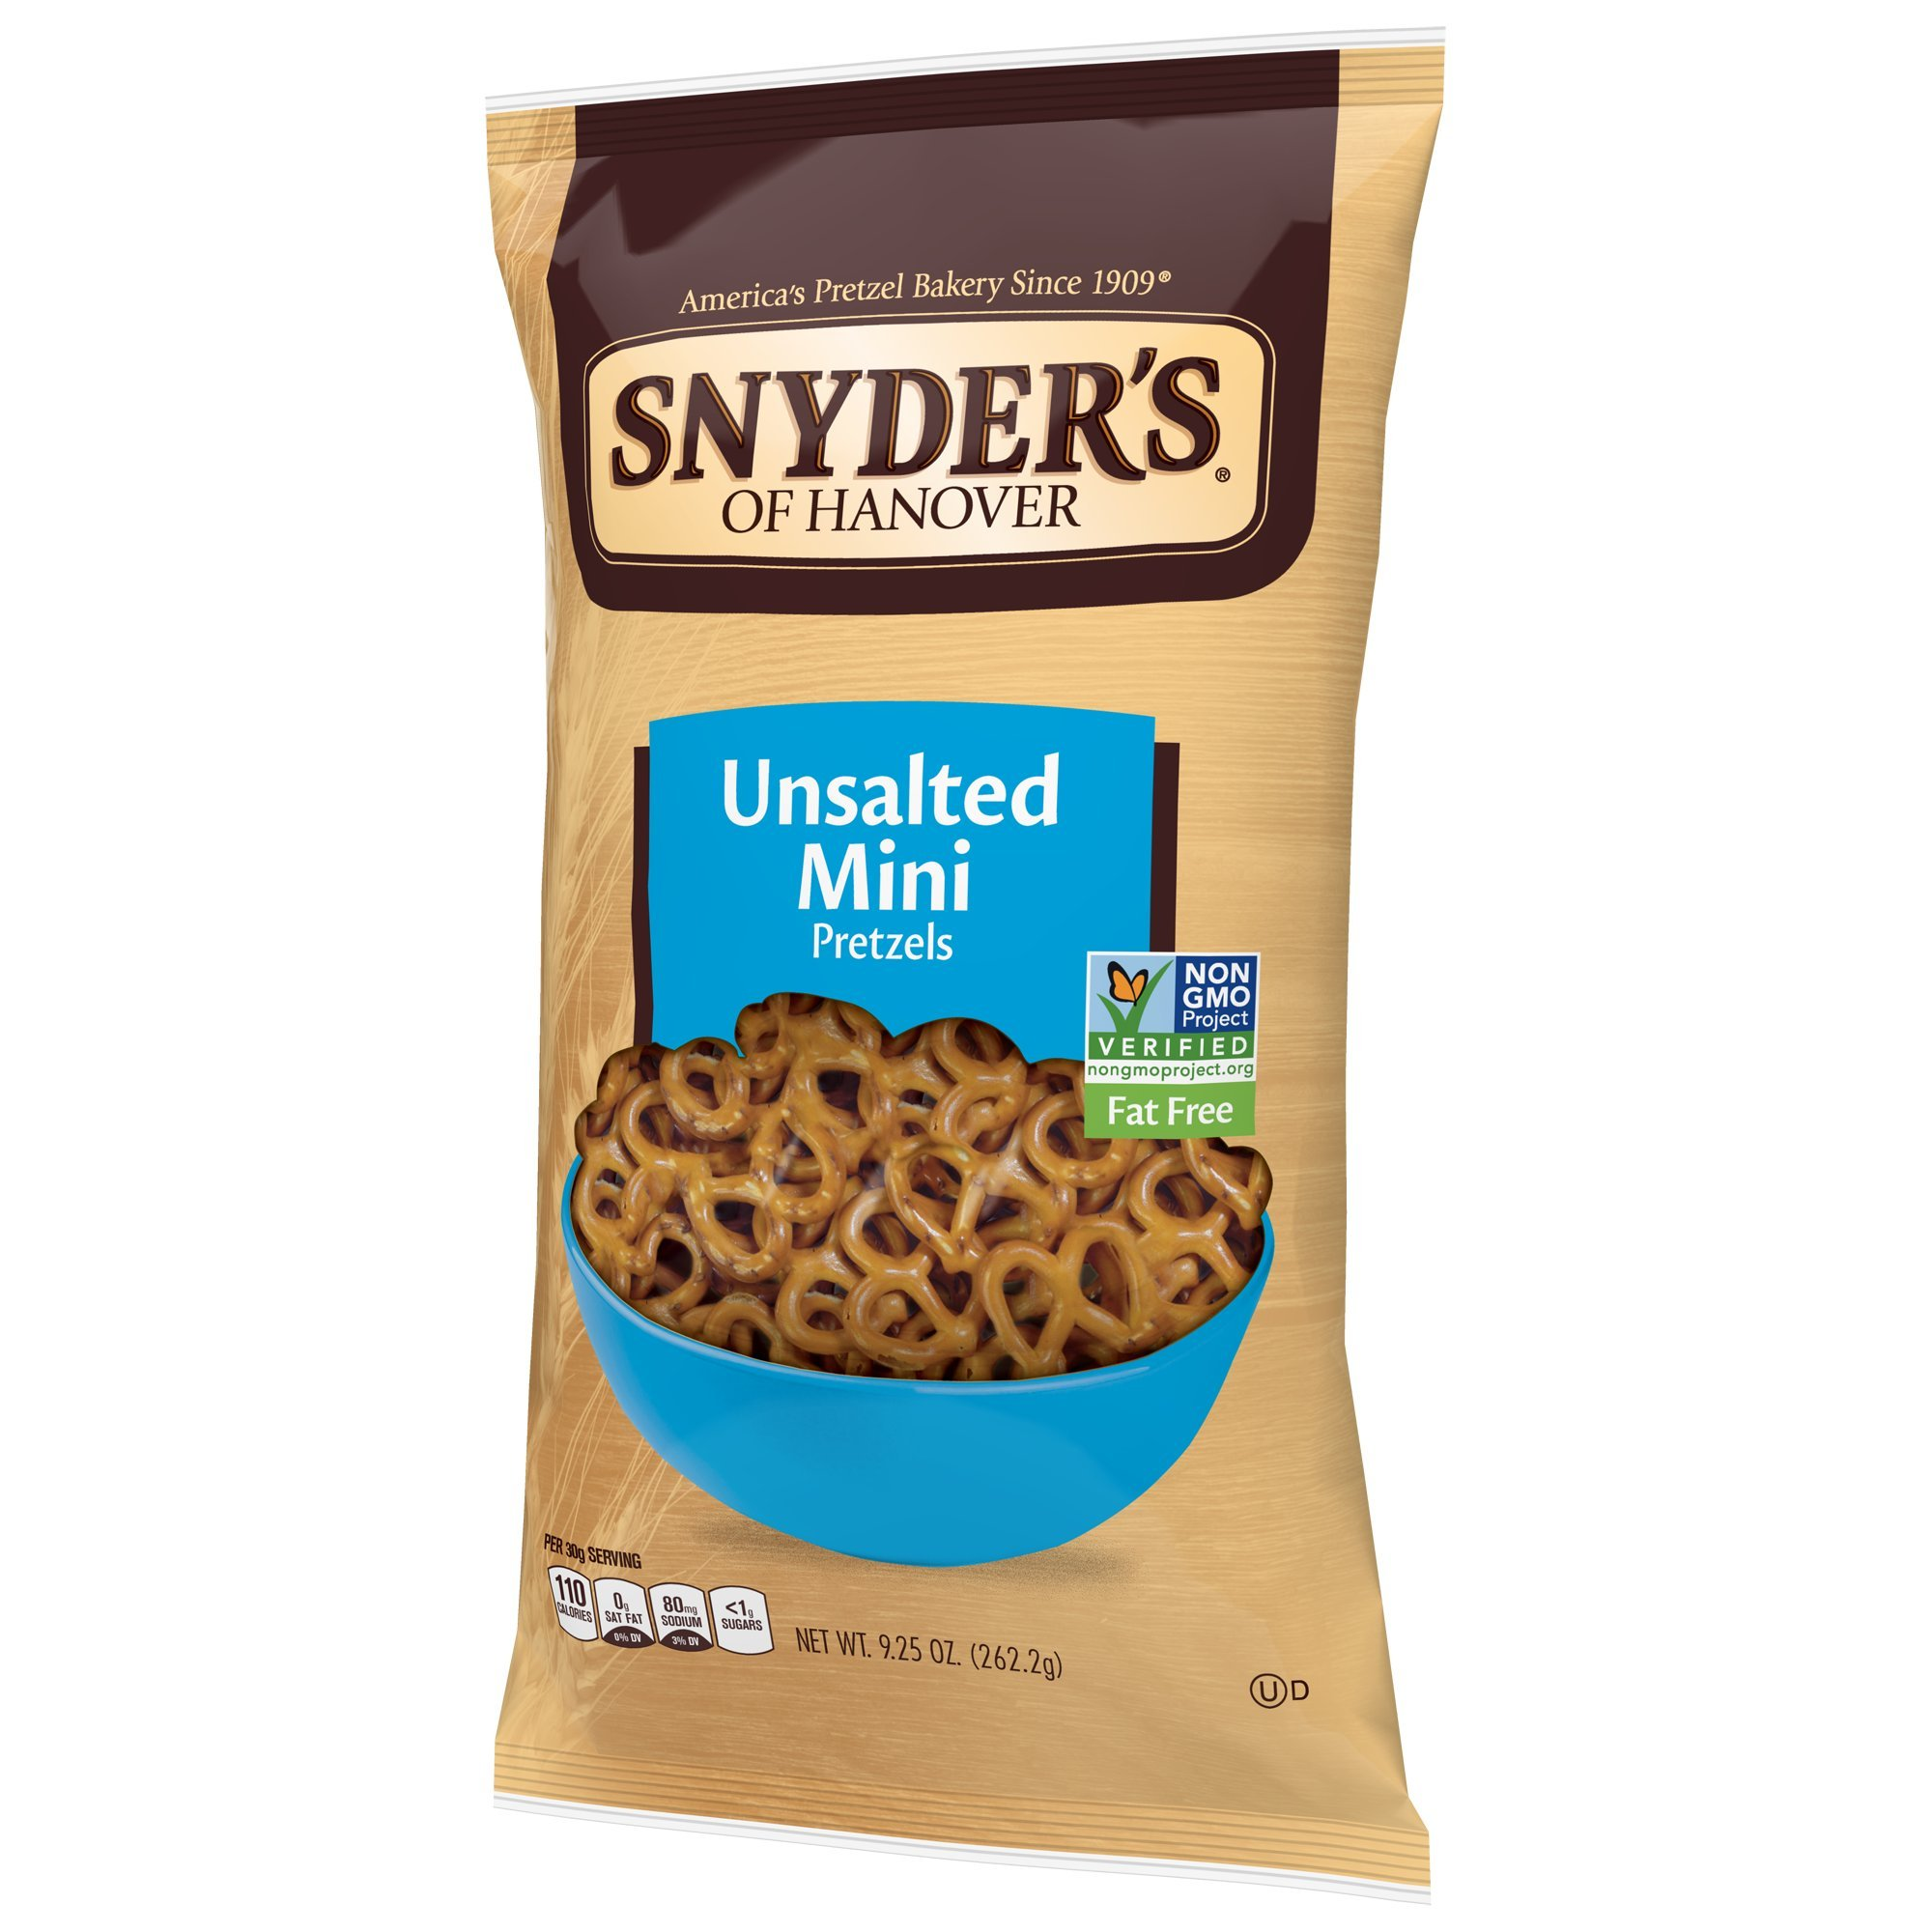 Snyder's of Hanover Mini Pretzels, Unsalted, 9.25 Ounce Bags (Pack of 12) by Snyder's of Hanover (Image #4)